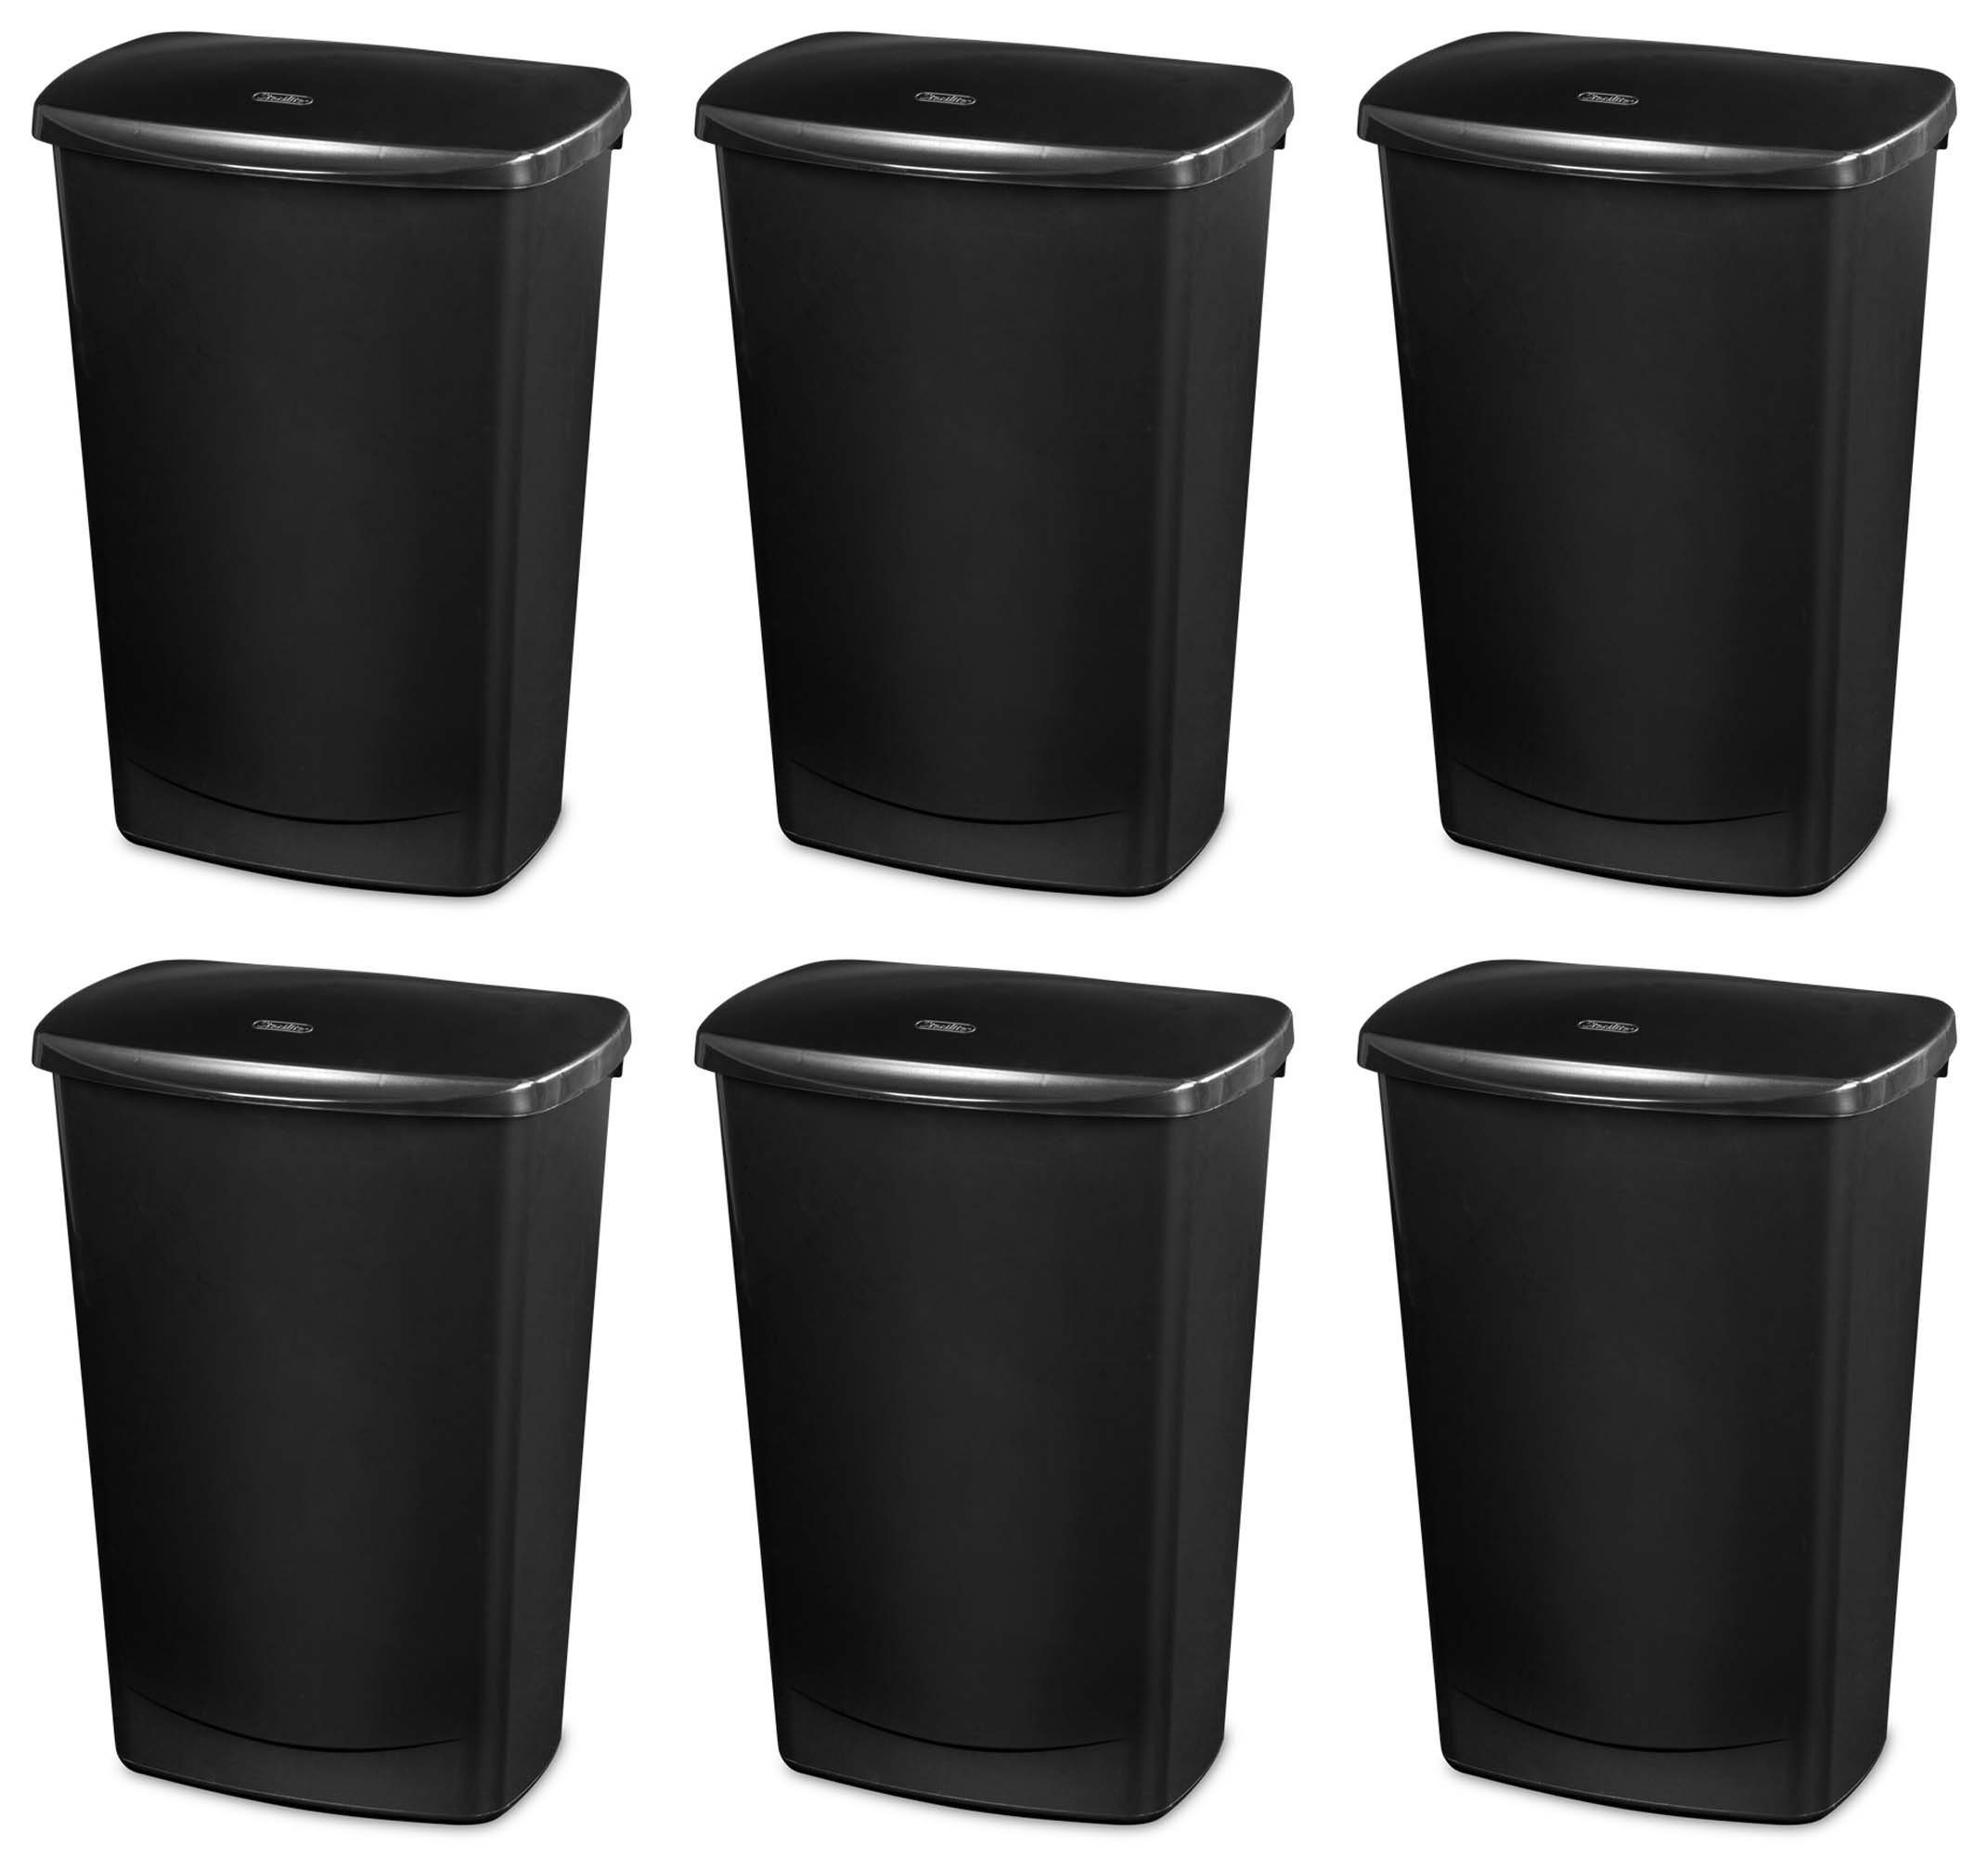 Sterilite 10919006 11.4 Gallon Lift-Top Covered Wastebasket Trash Can, 6 Pack by Sterilite